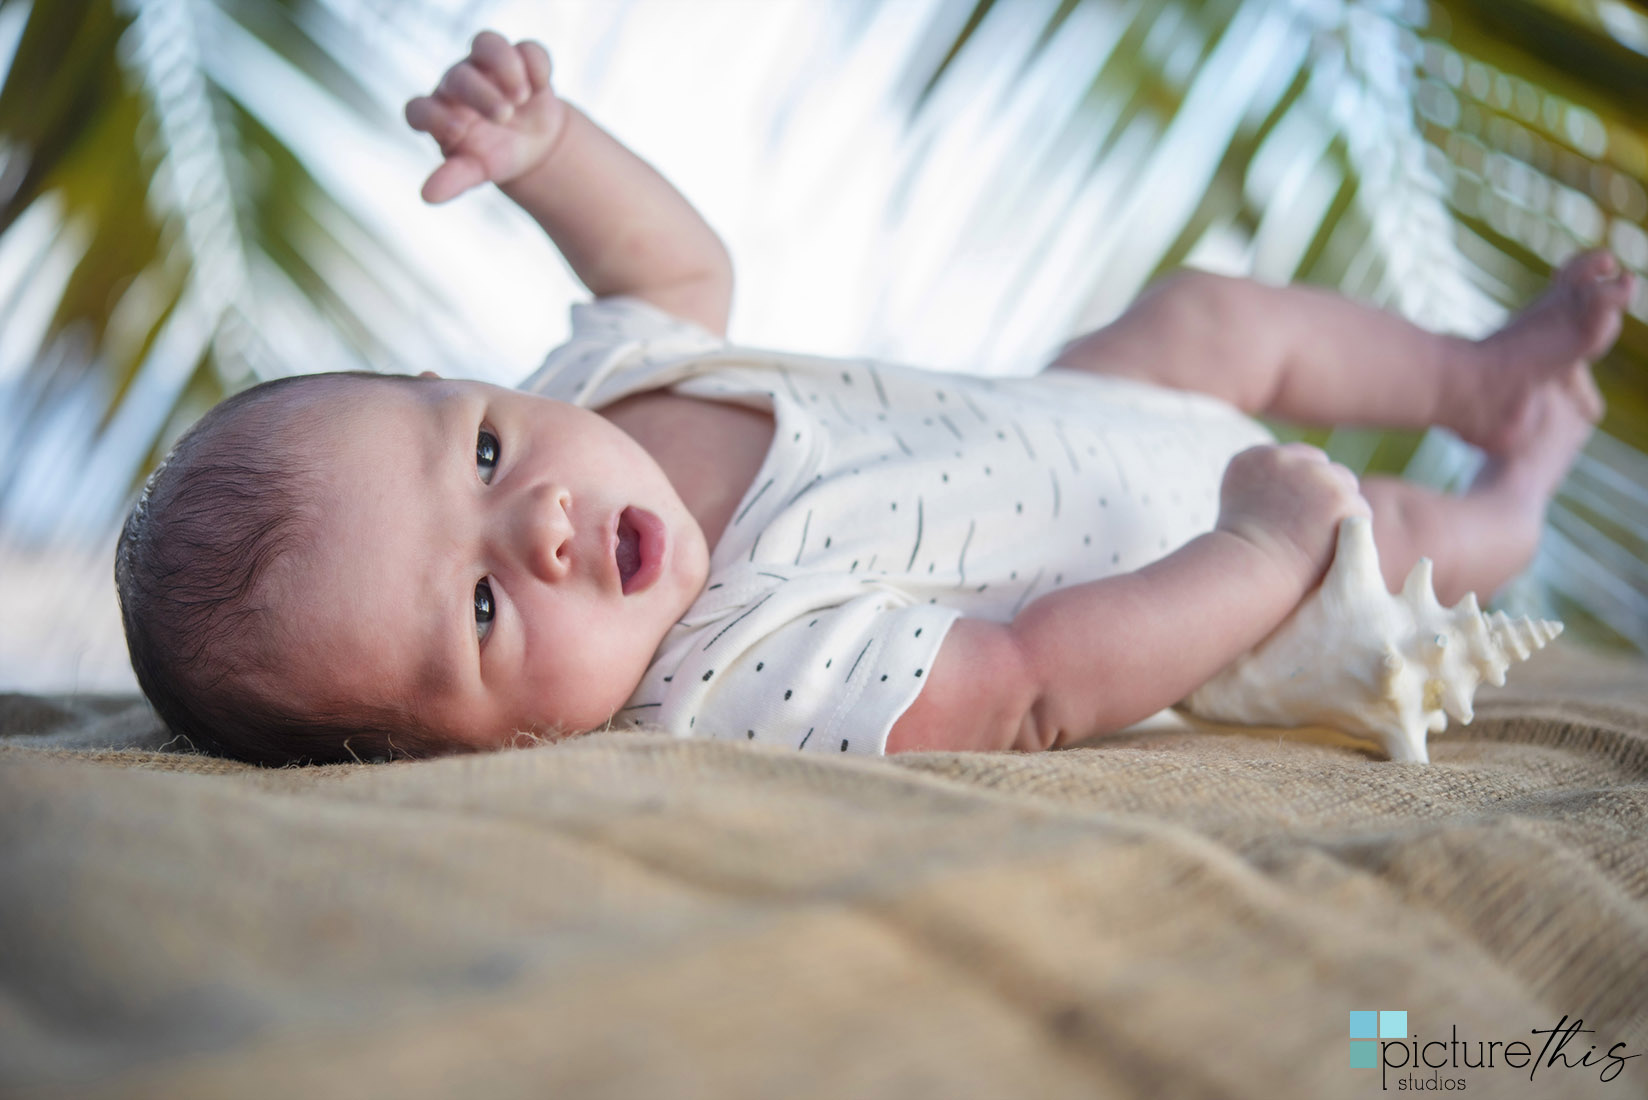 Baby Nolan's first trip to the beach to do his newborn photos done. He was a perfect baby and Heather Holt Photography with Picture This Studios had a beautiful sunset at Spotts Beach on Grand Cayman.